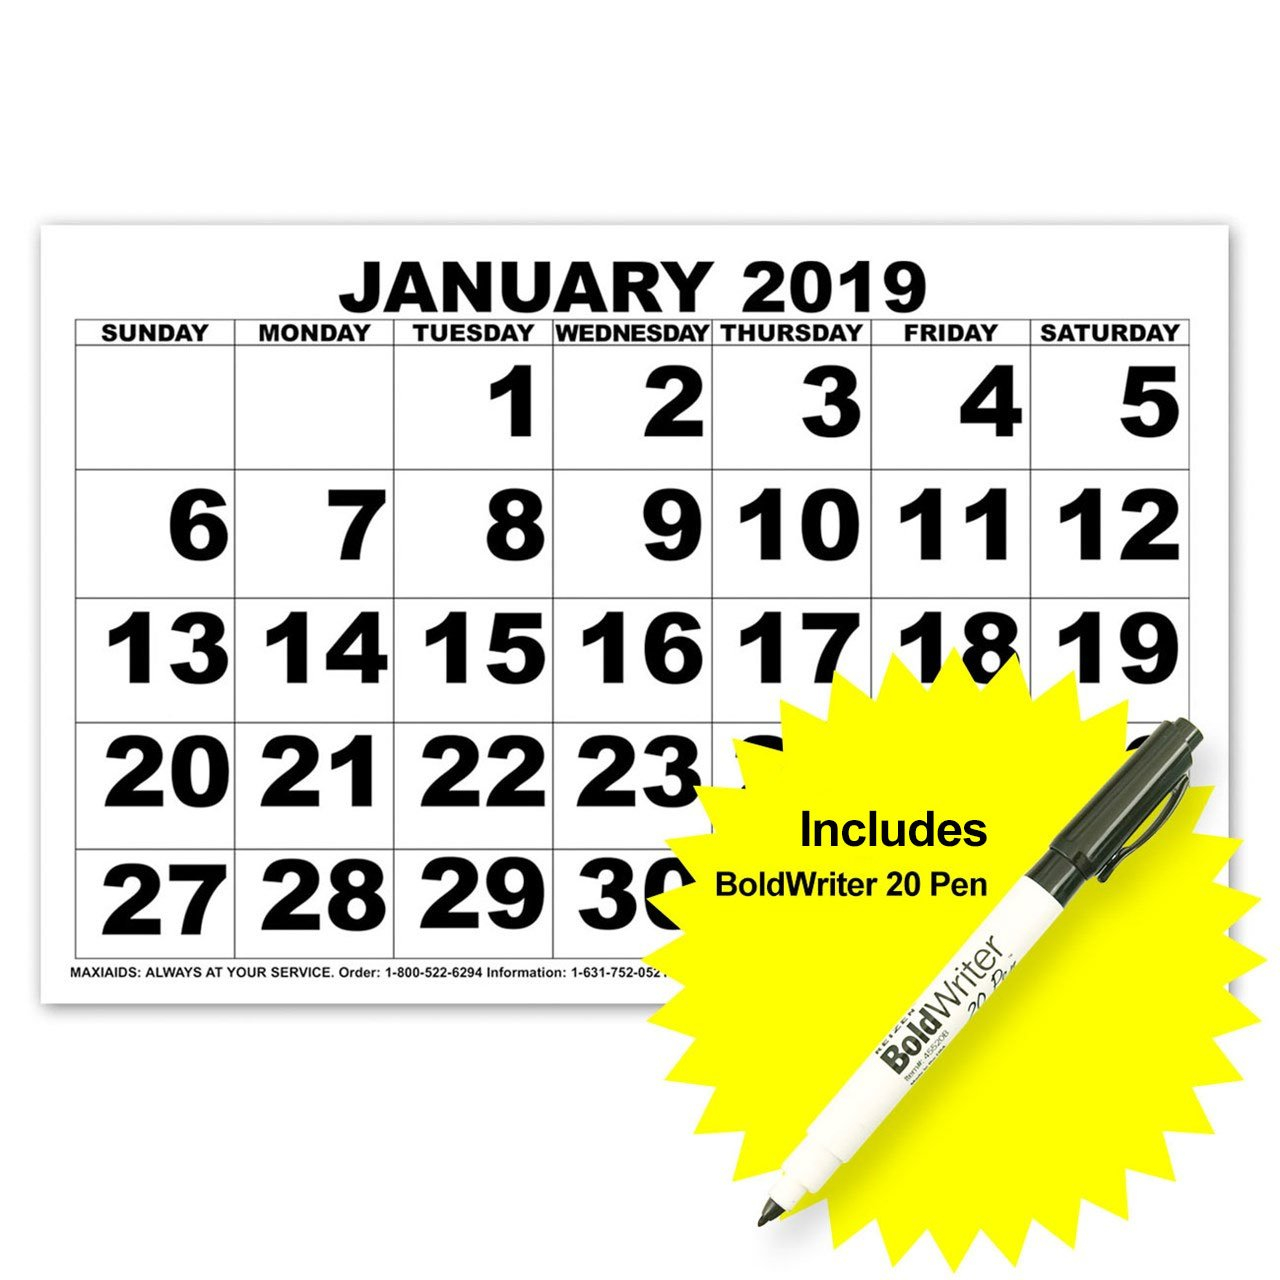 Maxiaids | Low Vision Print Calendar – 2019 With Boldwriter 20 Pen Zeiss Calendar 2019